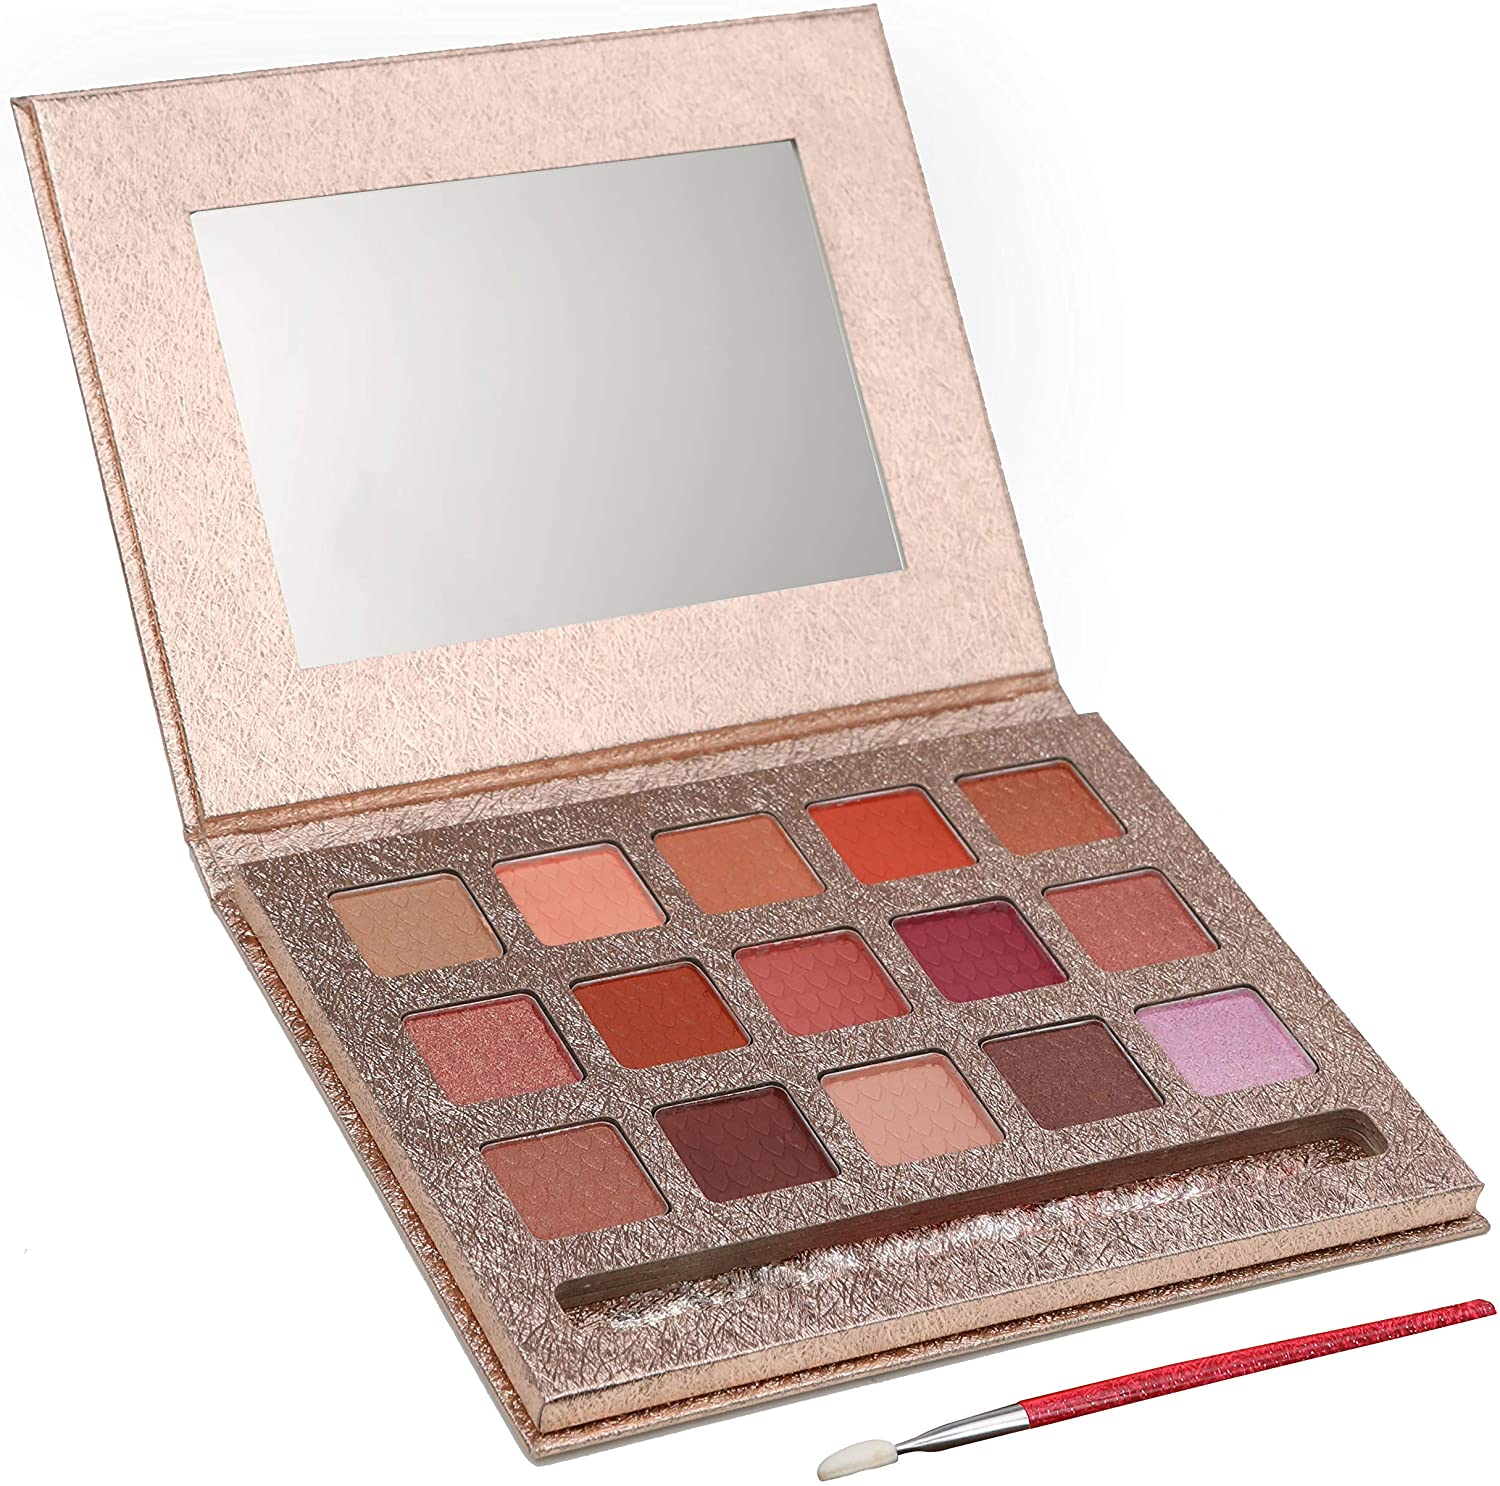 DRESS 2 PLAY My First Eyeshadow Palette Kit - Pretend Makeup Princess Playset with 15 Shades - Comes in a Gold Case, Mirror and Brush Included